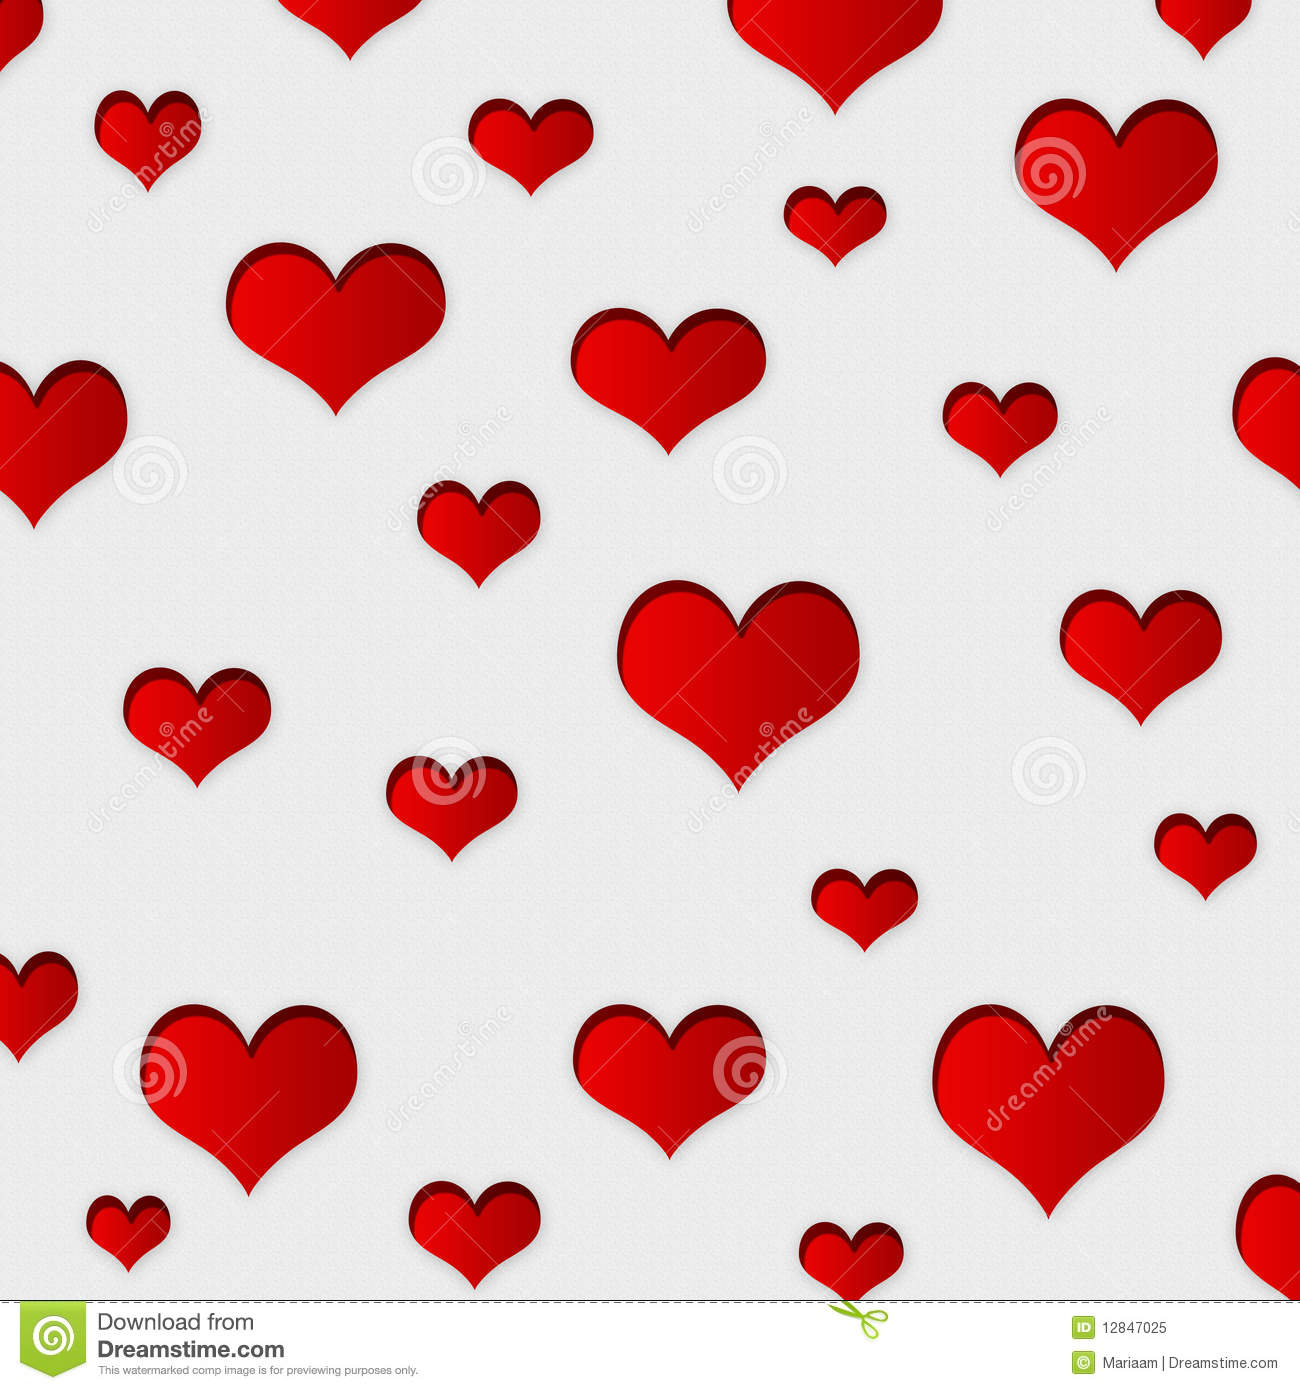 Wallpaper Or Background With Red Hearts  Lovely Design For Wrapping